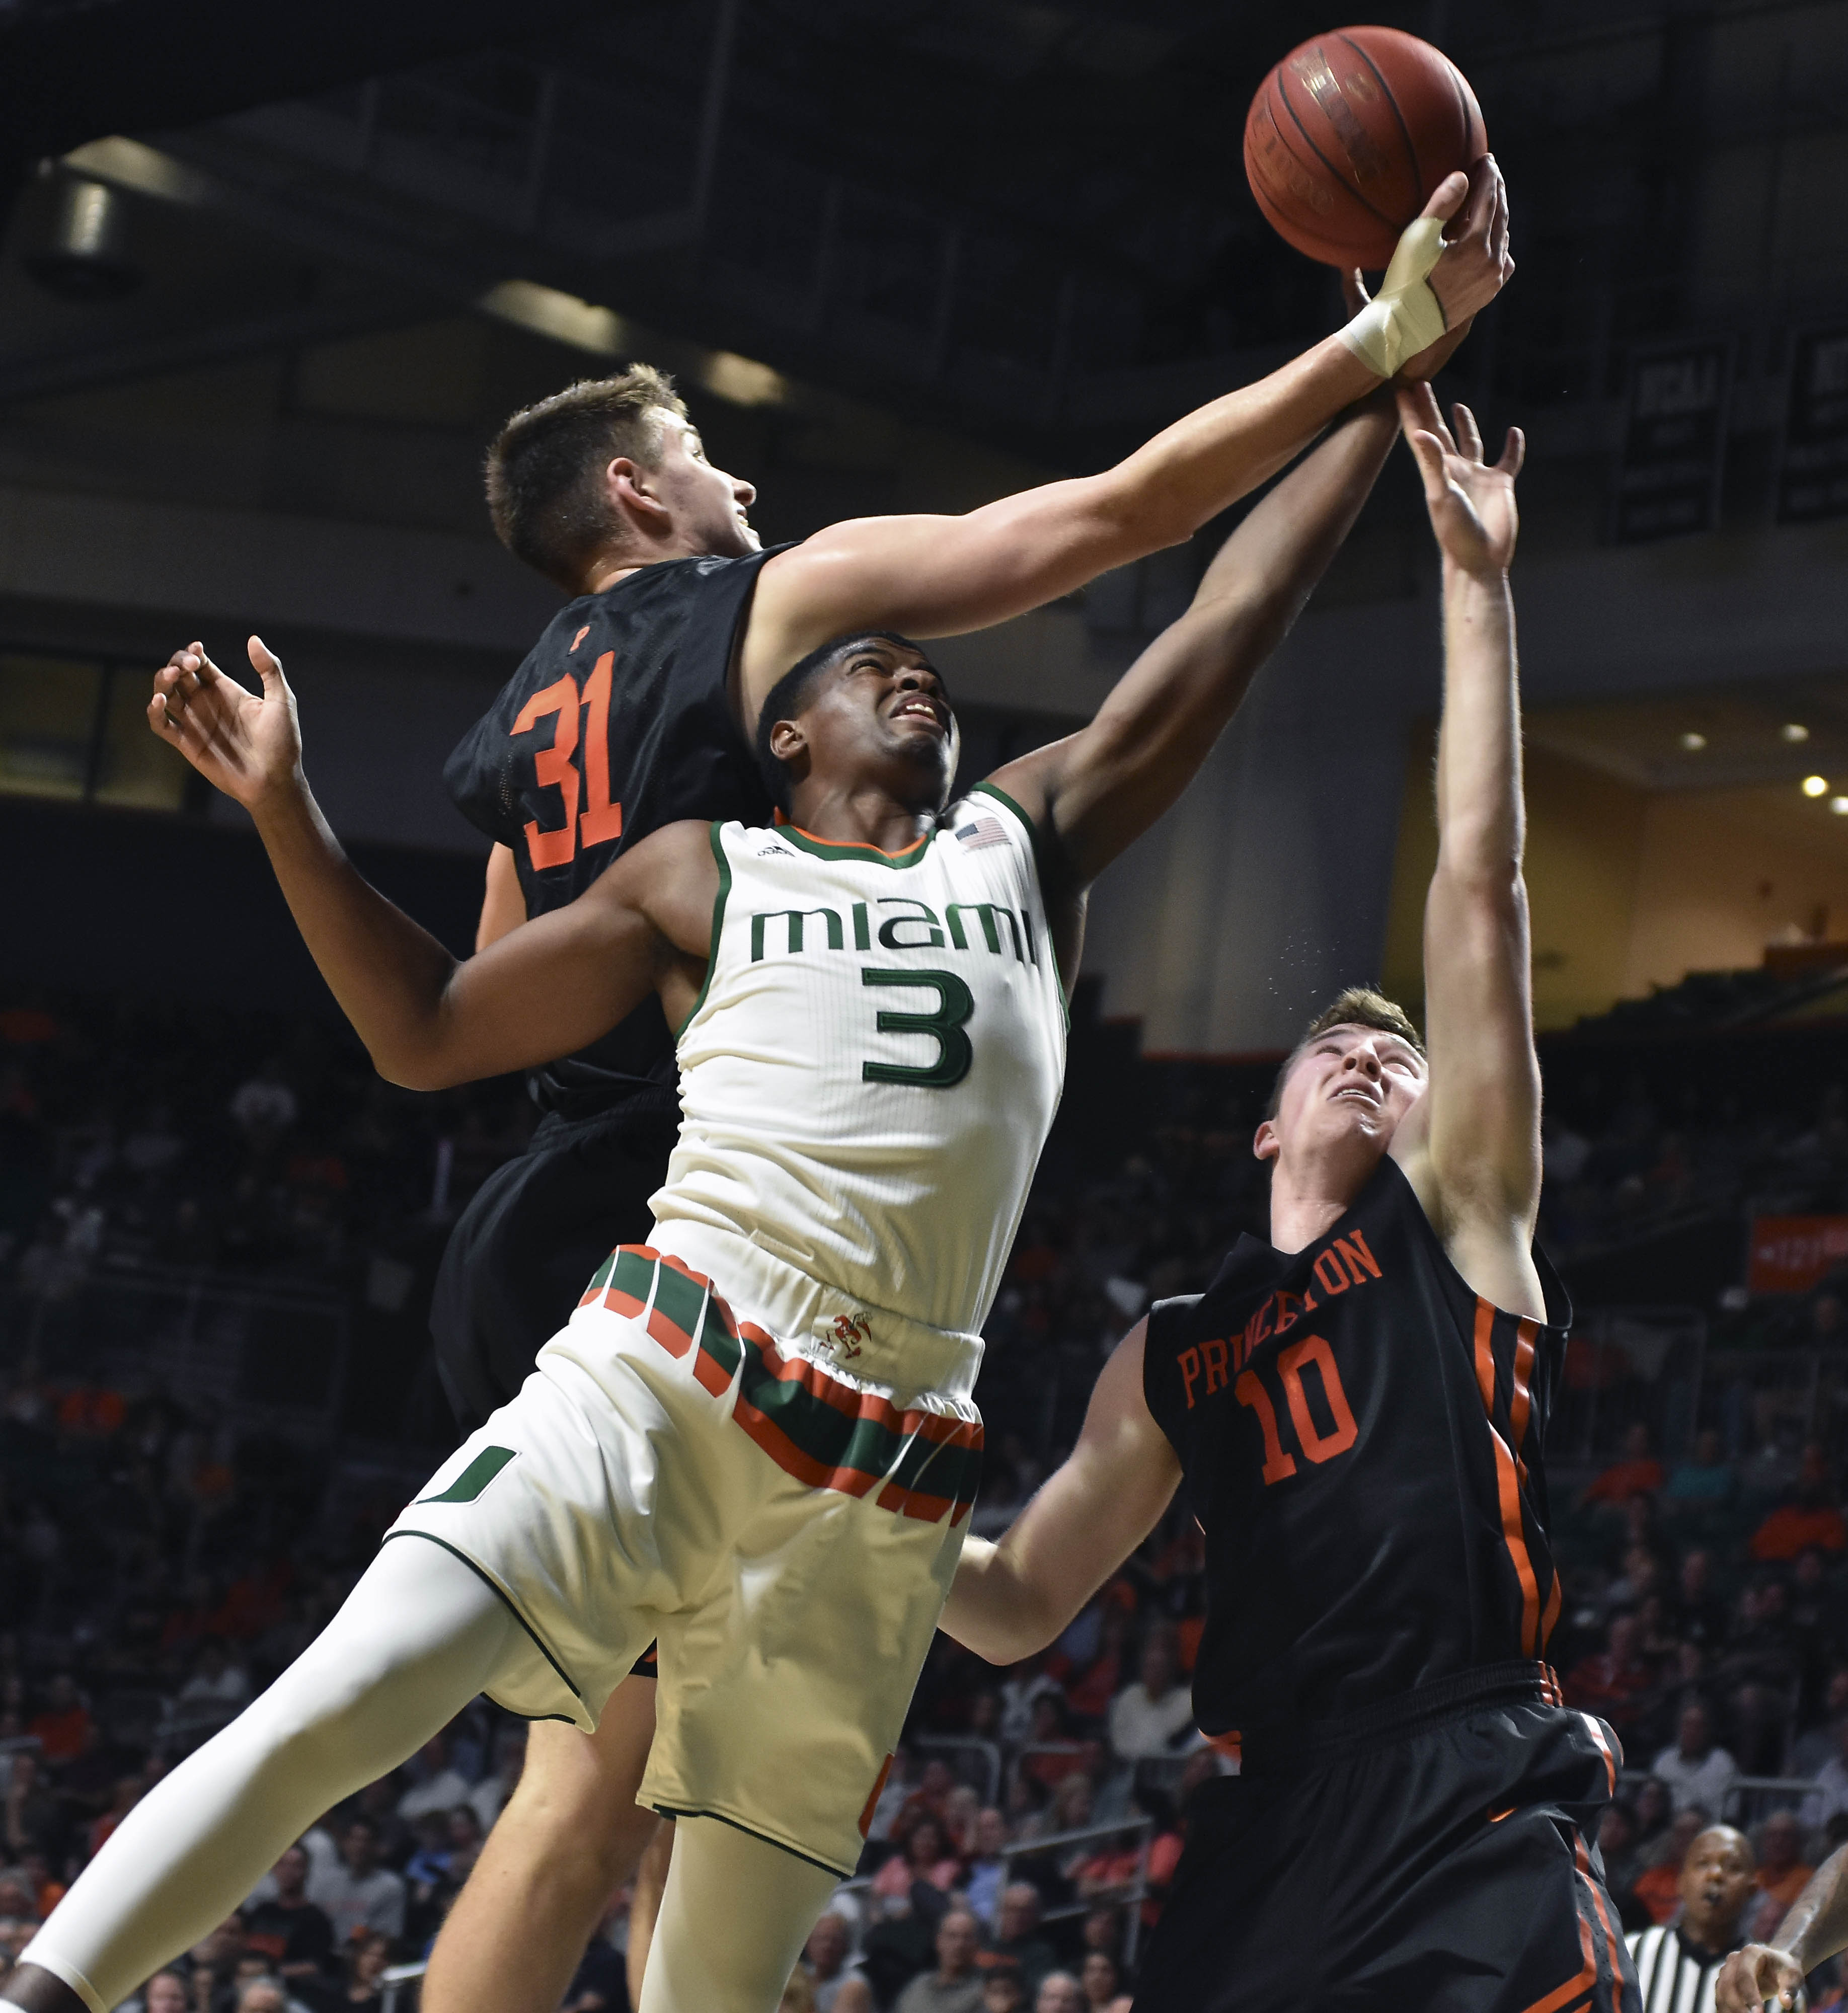 Miami guard Anthony Lawernce, Jr. goes up for a lay up against Princeton's Pete Miller and Spencer Weisz during the first half of an NCAA college basketball game at the Bank United Center in Coral Gables, Fla., Tuesday,  Dec. 29, 2015. (AP Photo/Gaston De